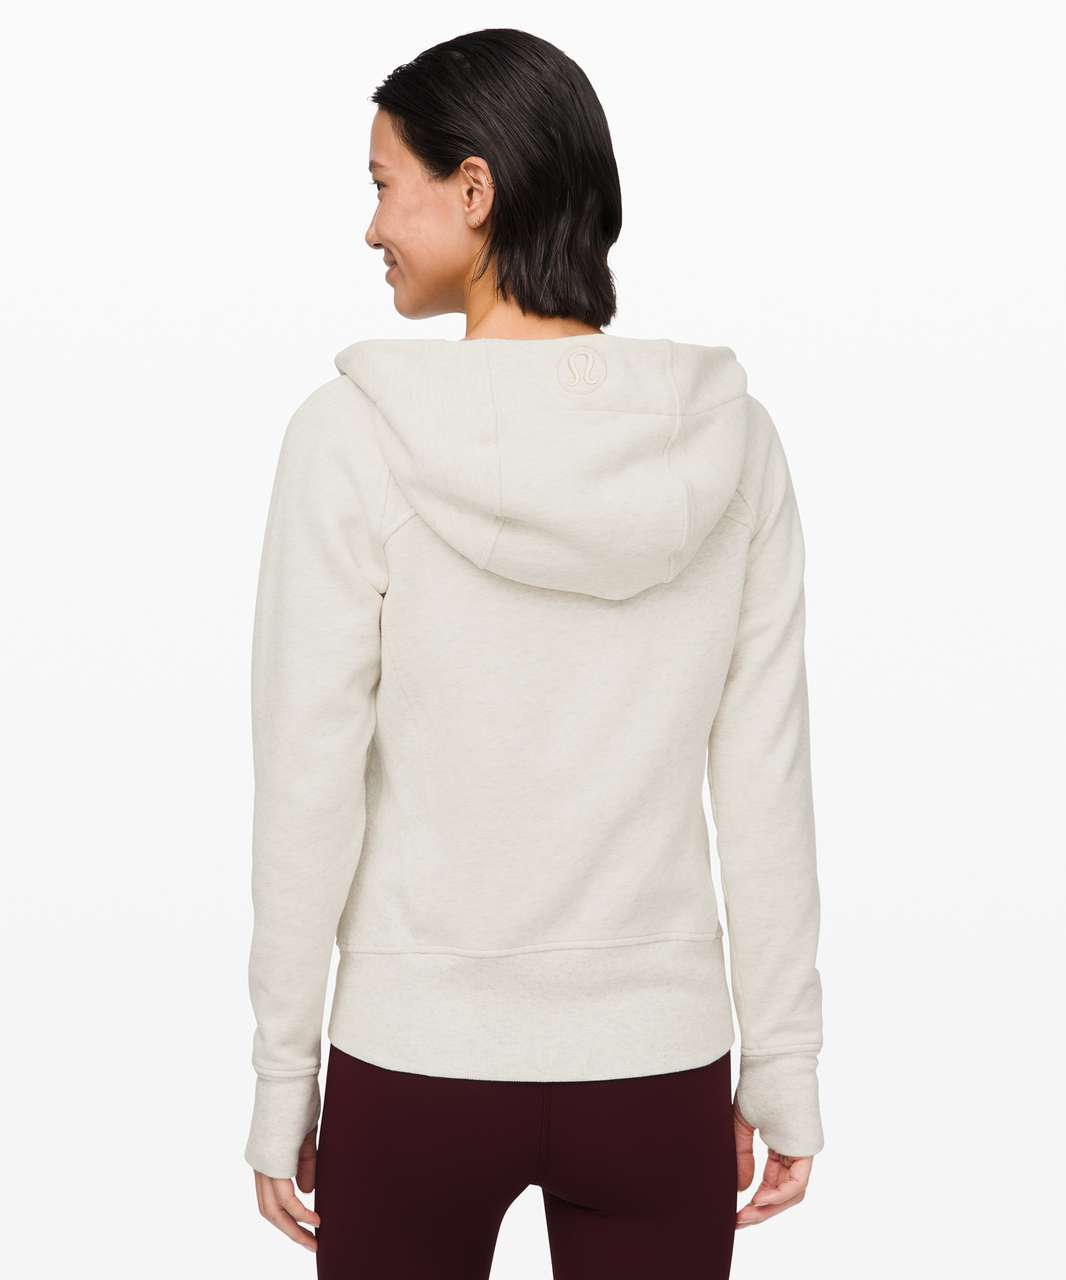 Lululemon Scuba Hoodie *Light Cotton Fleece - Heathered Light Ivory / Gold